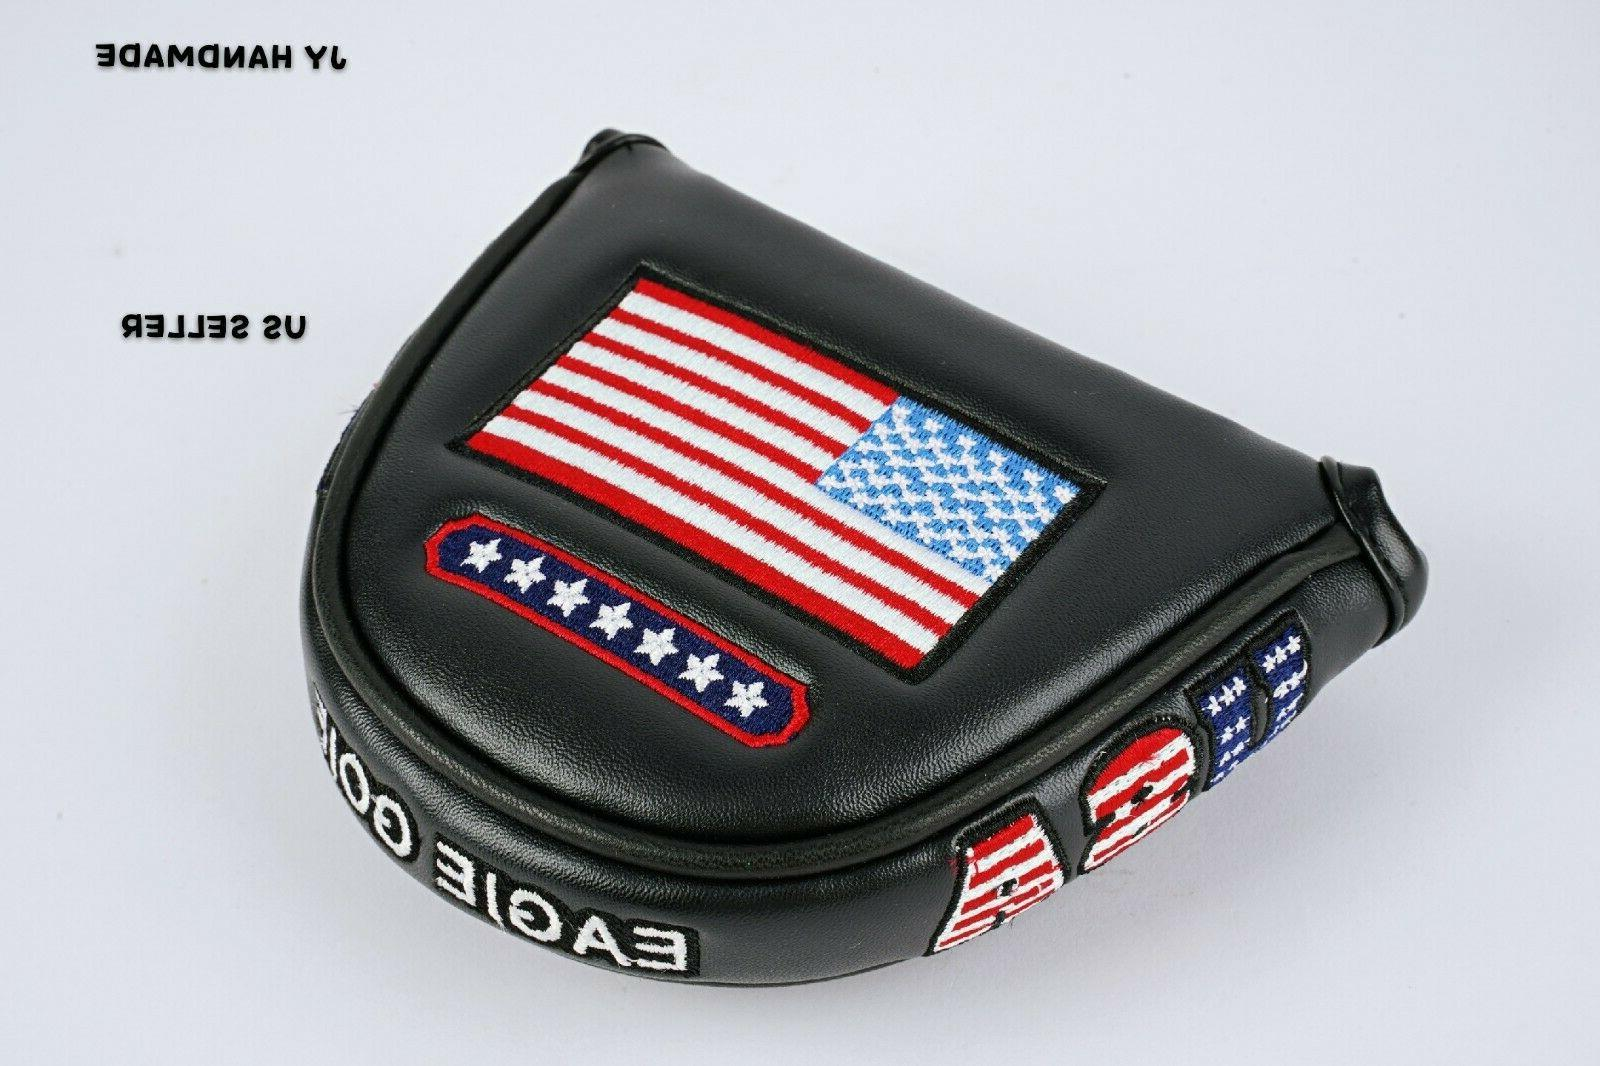 america mallet black putter cover headcover